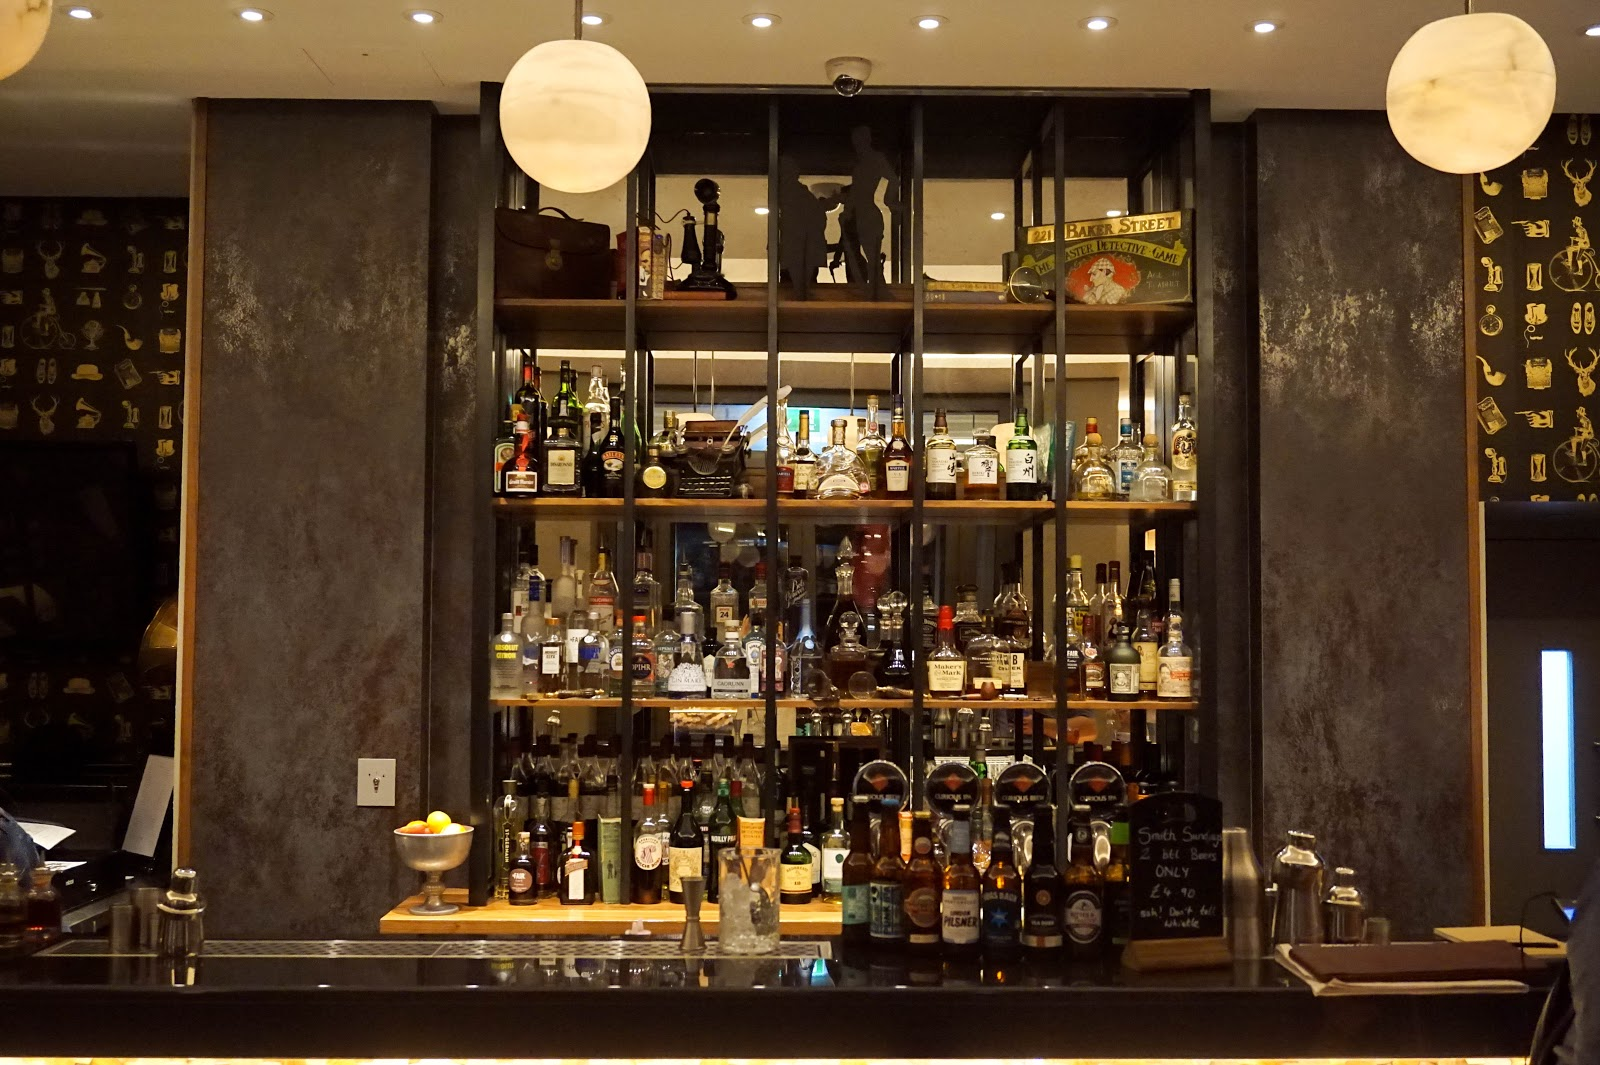 Mayfair's local Smith & Whistle